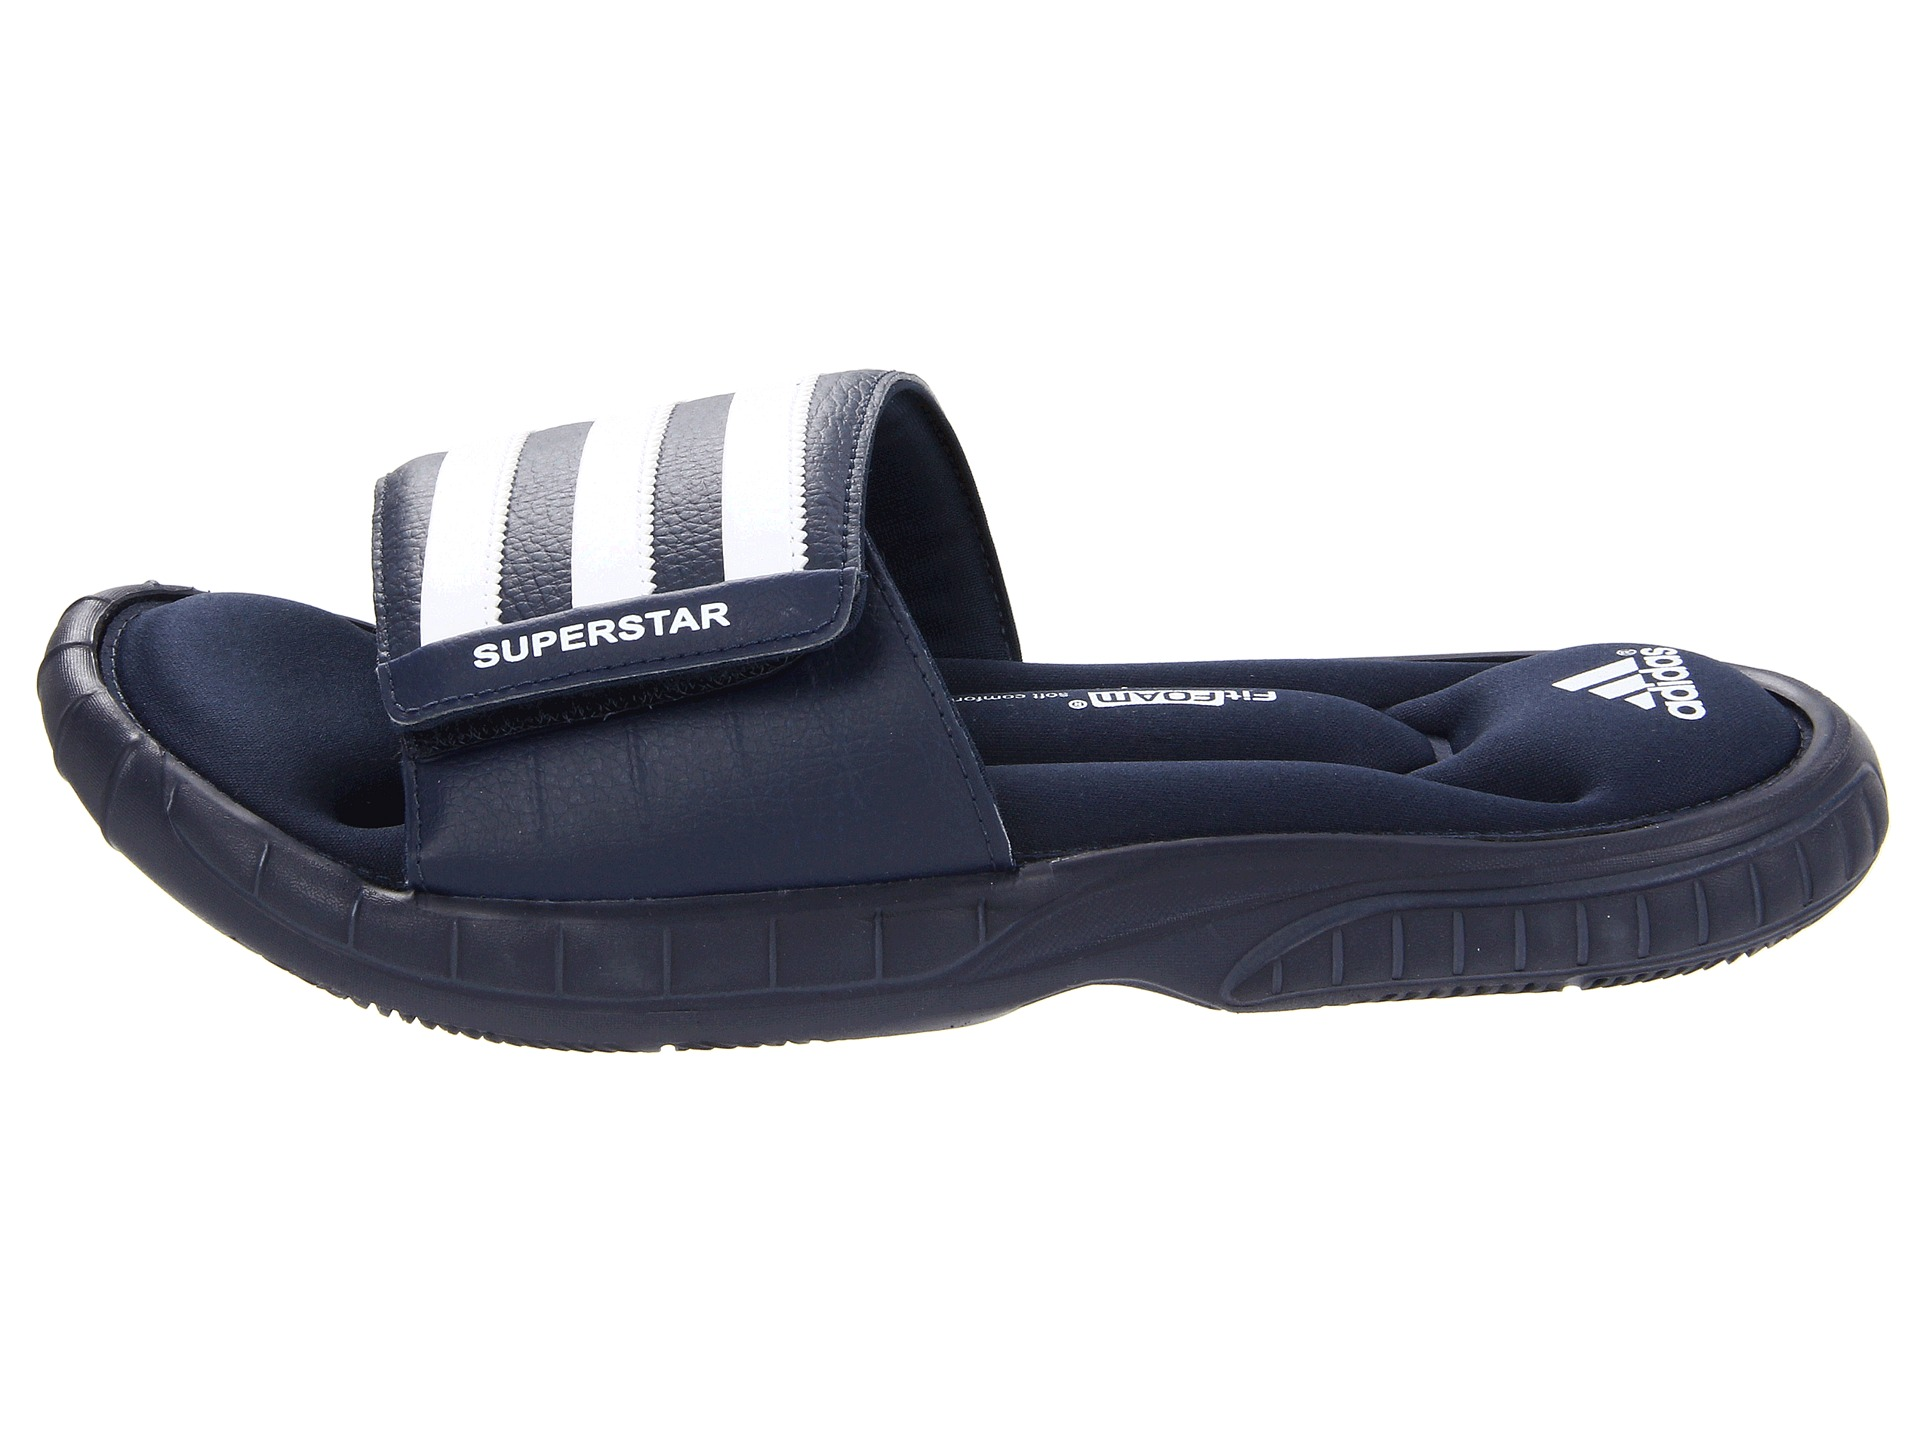 adidas mens superstar 2g slide sandal